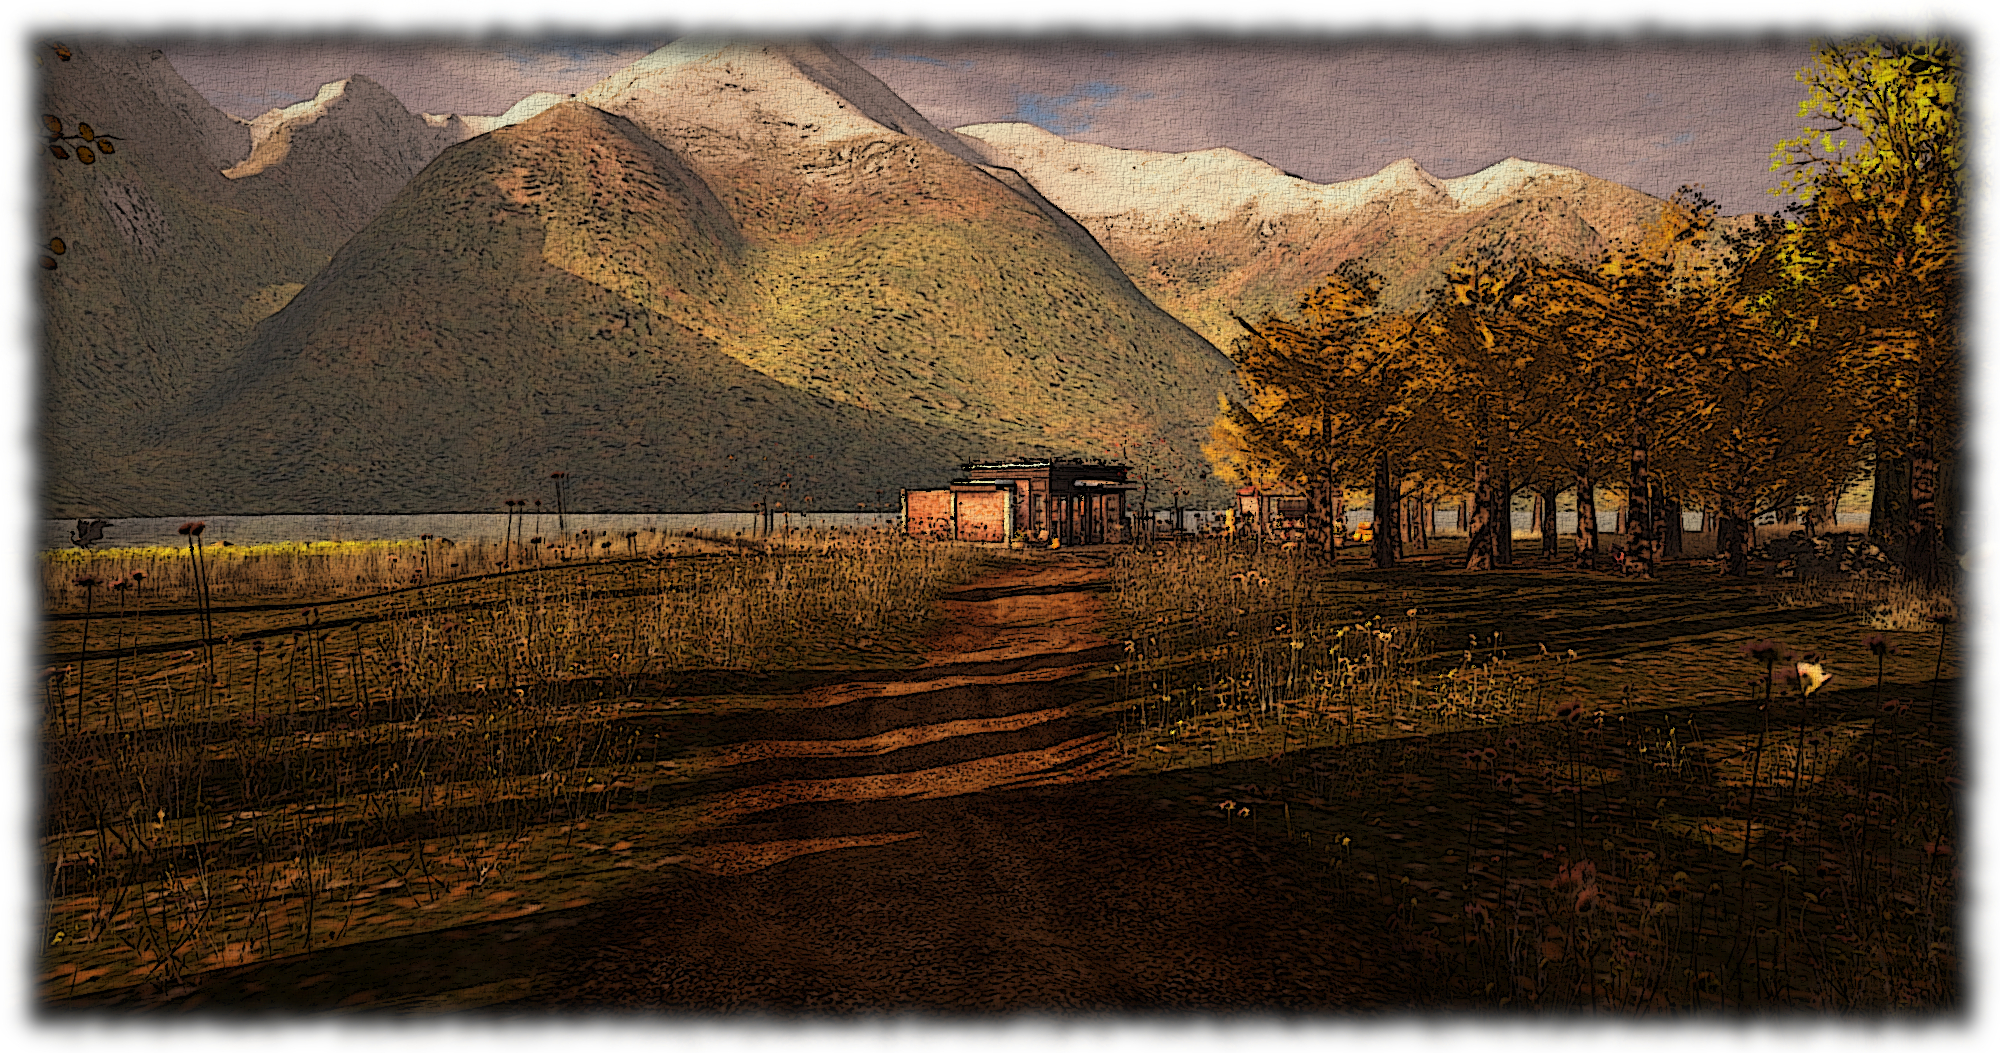 The Trace, The Trace; Inara Pey, November 2014, on Flickr